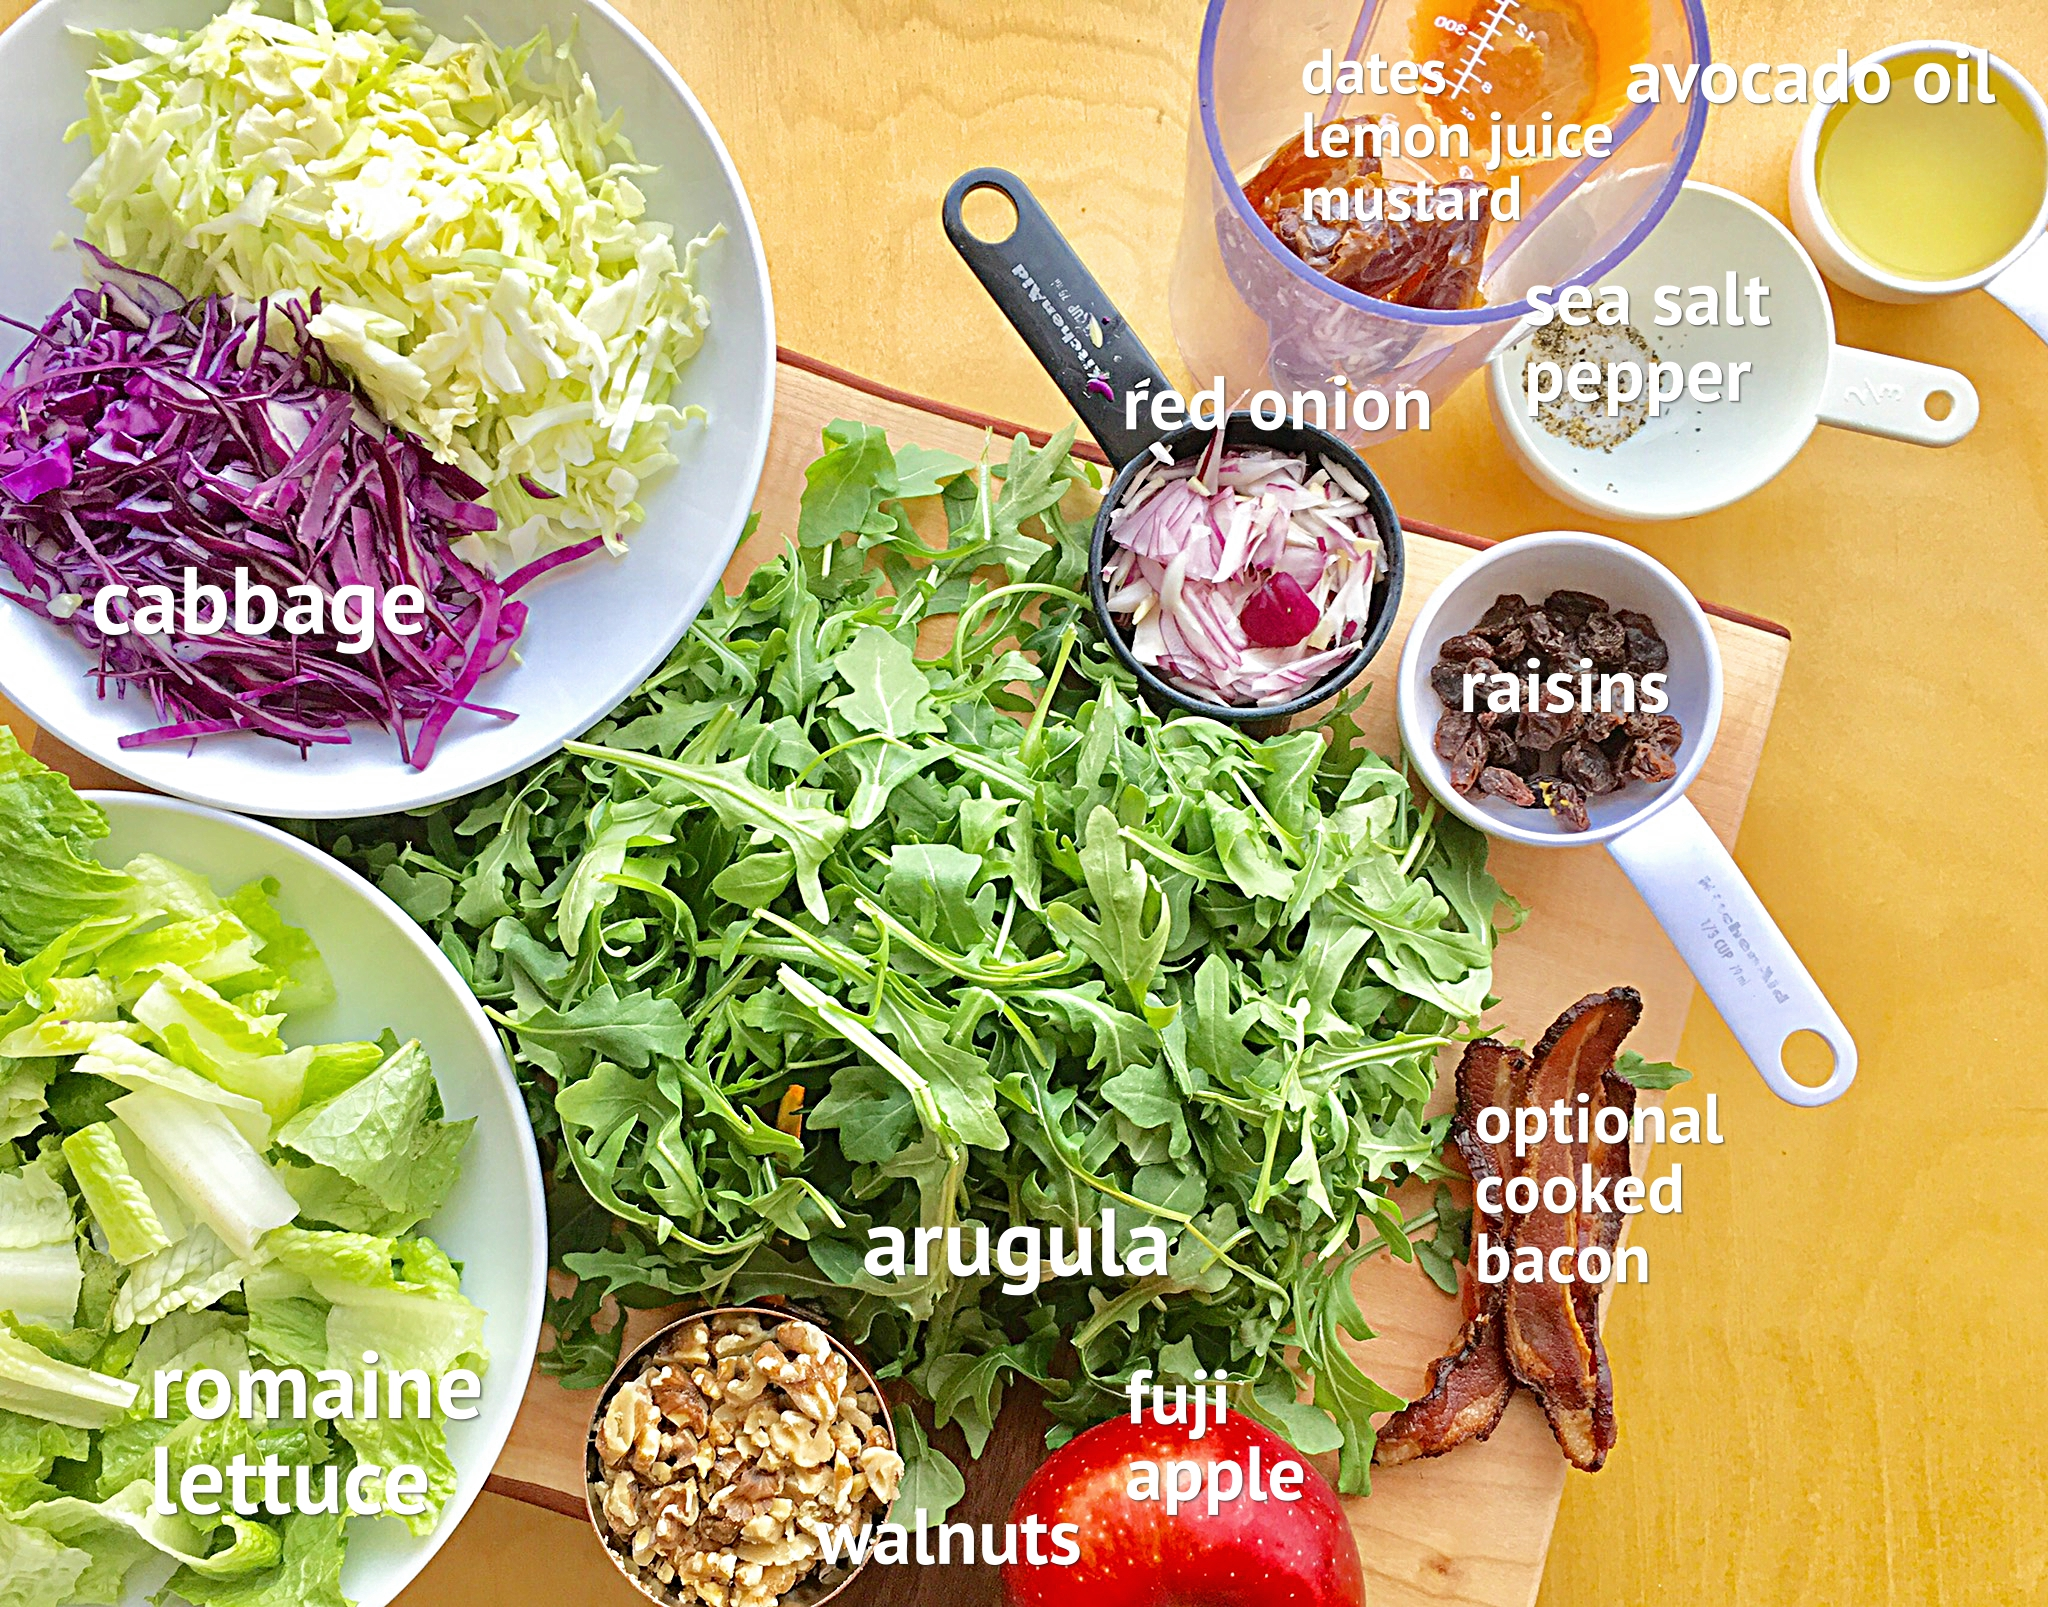 Cabbage Crunch Arugula Salad